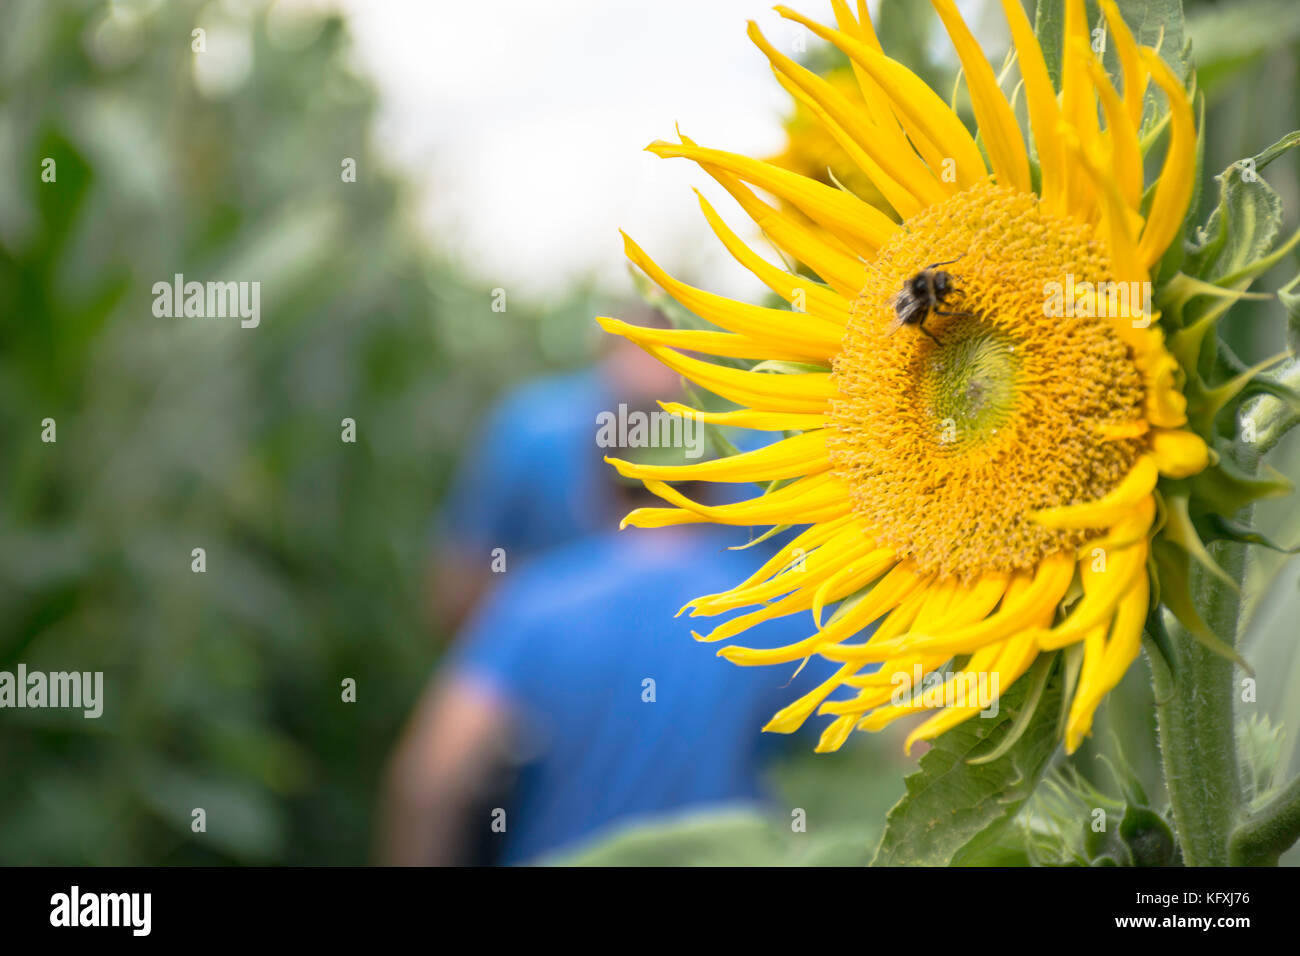 bumble bee on a sunflower - Stock Image